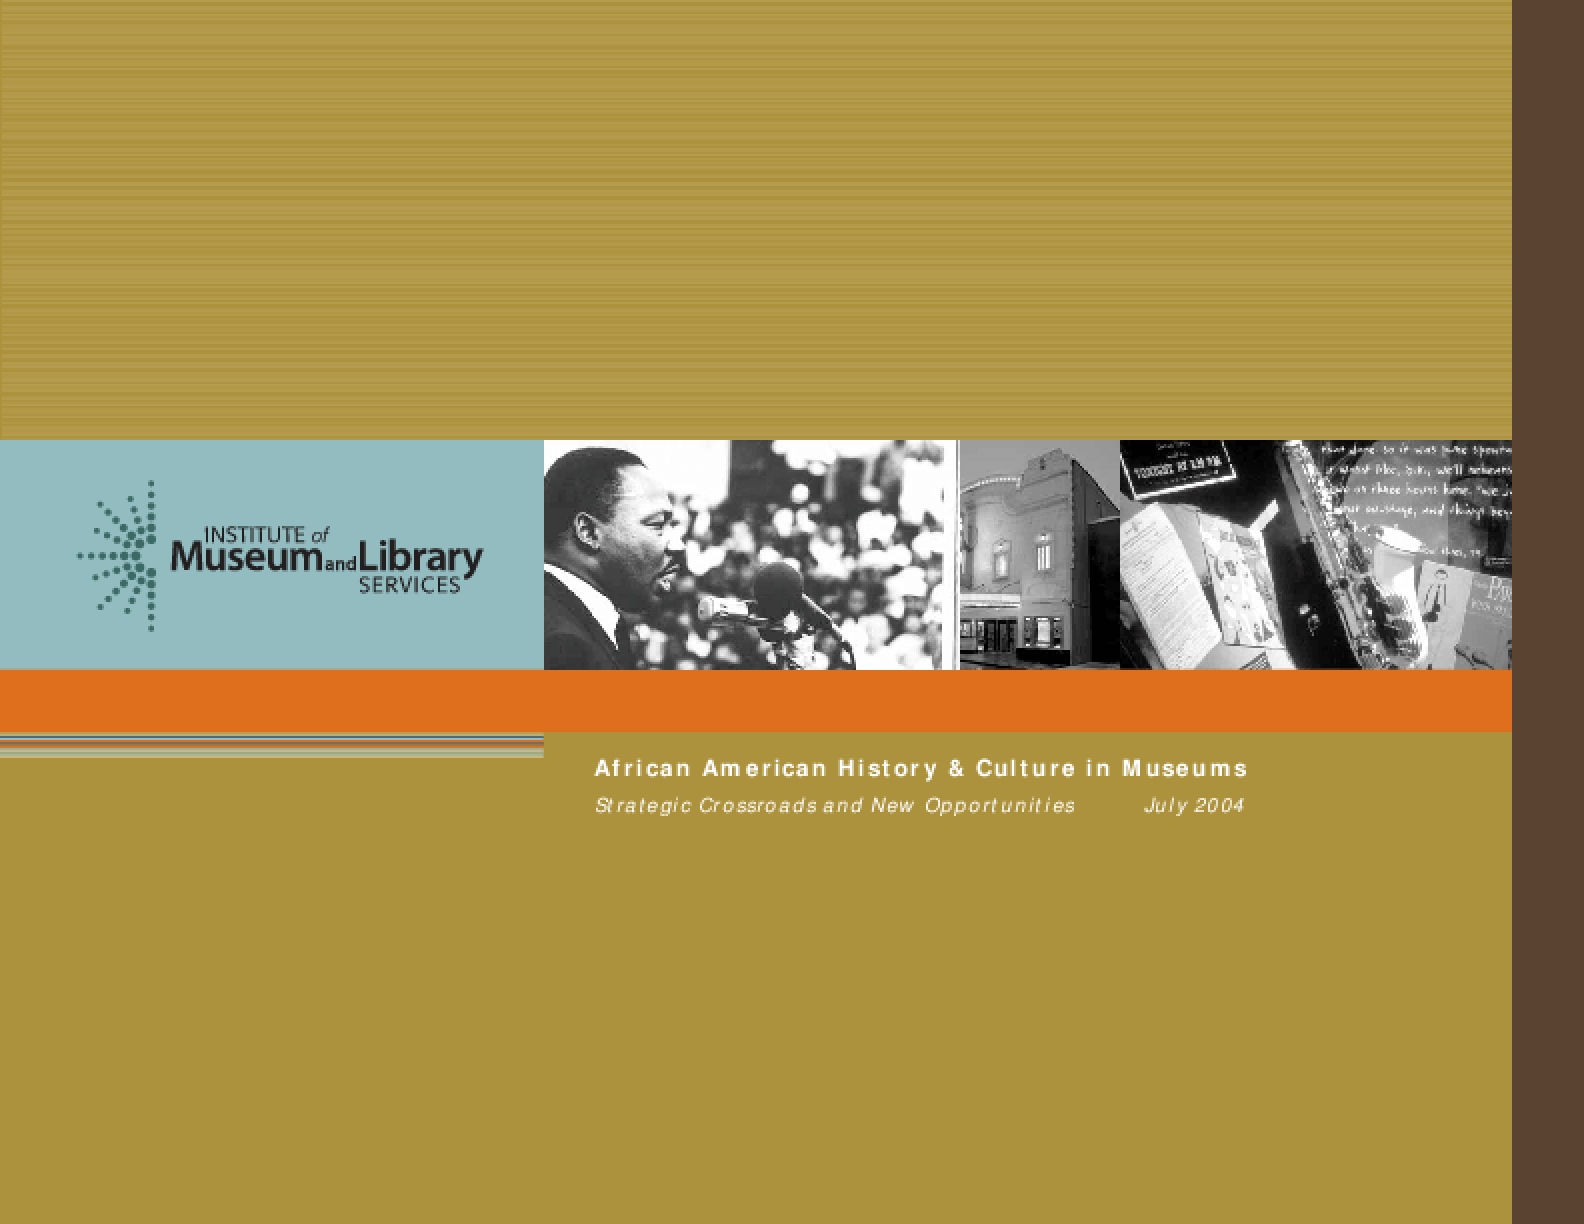 African American History & Culture in Museums: Strategic Crossroads and New Opportunities